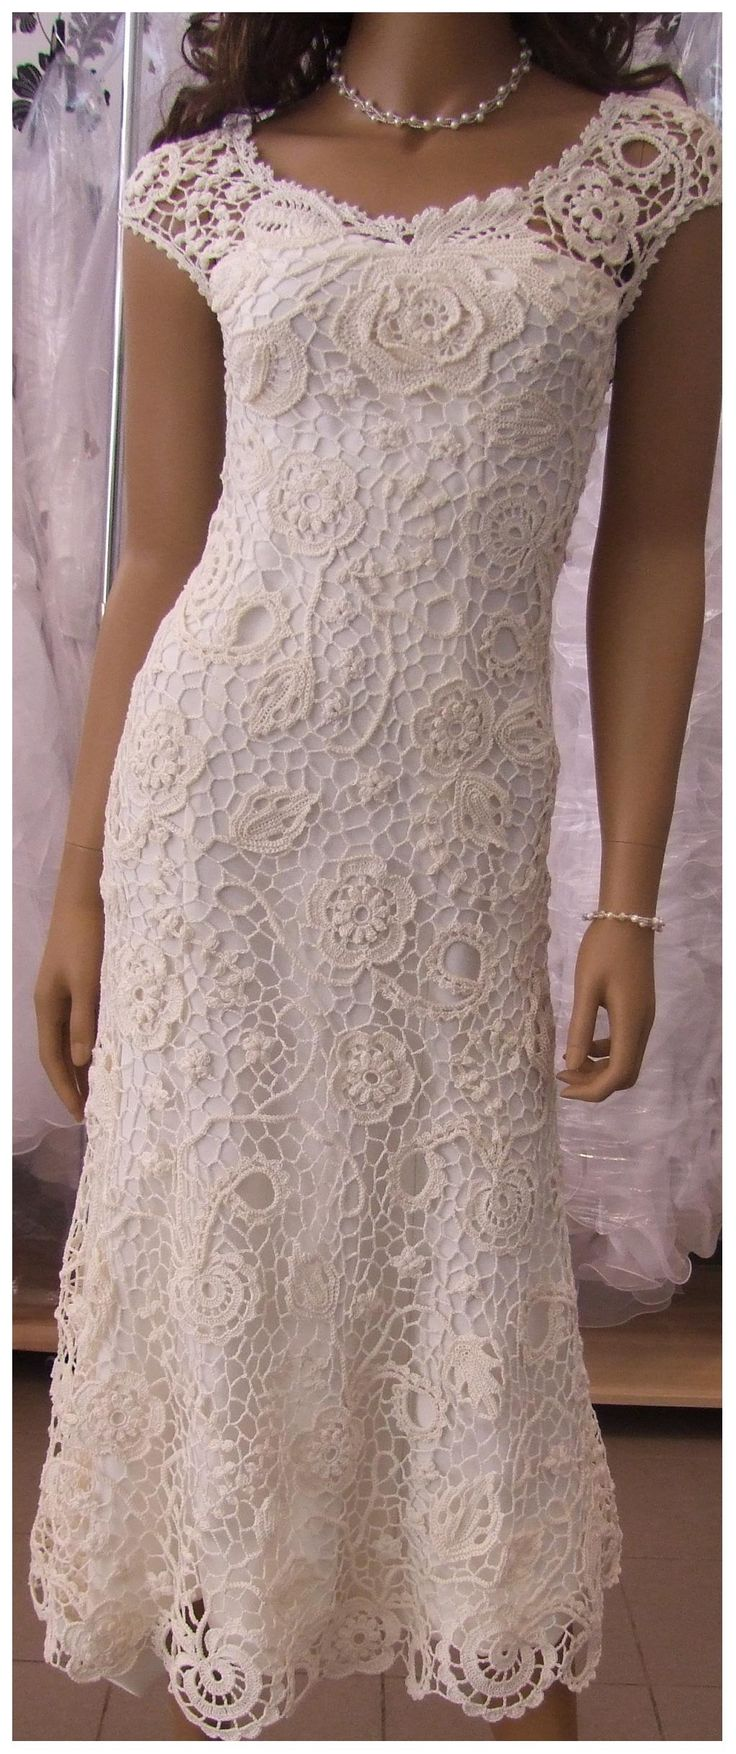 Best 25+ Crochet wedding dress pattern ideas on Pinterest ...